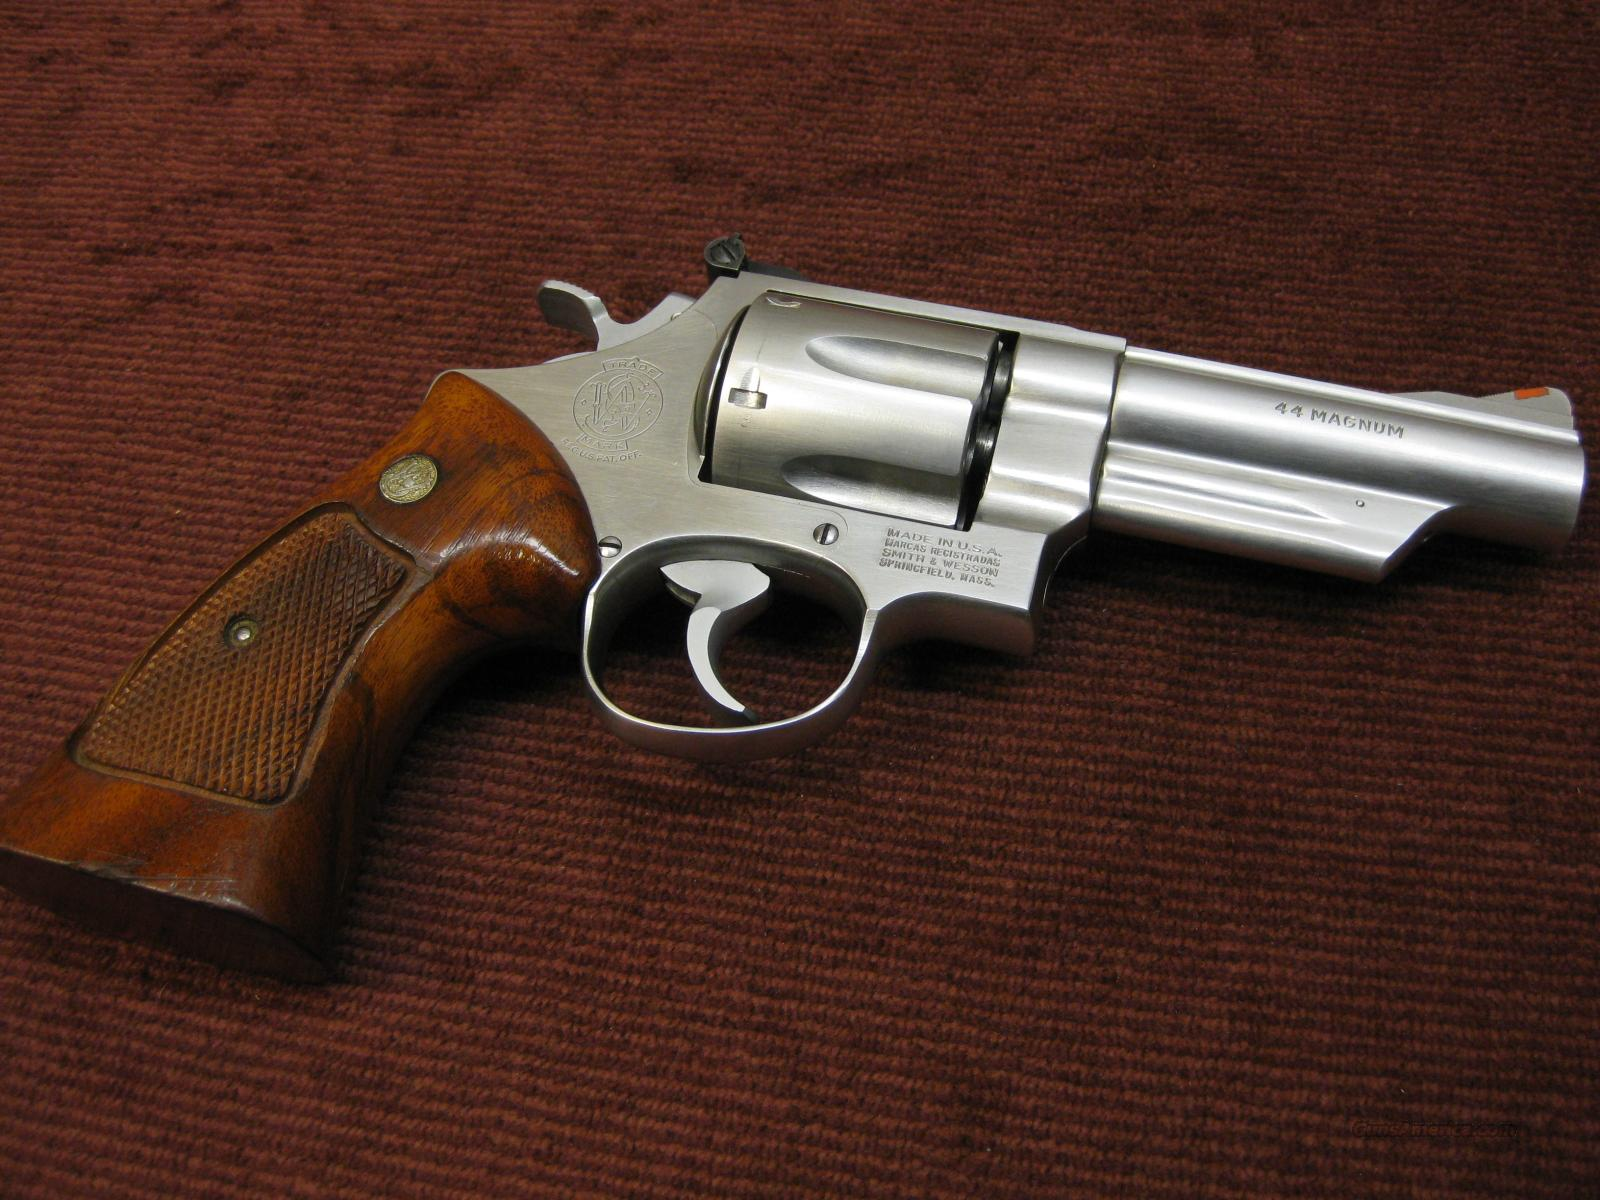 SMITH & WESSON 629-1  .44 MAGNUM - 4-INCH BARREL - EXCELLENT !  Guns > Pistols > Smith & Wesson Revolvers > Model 629